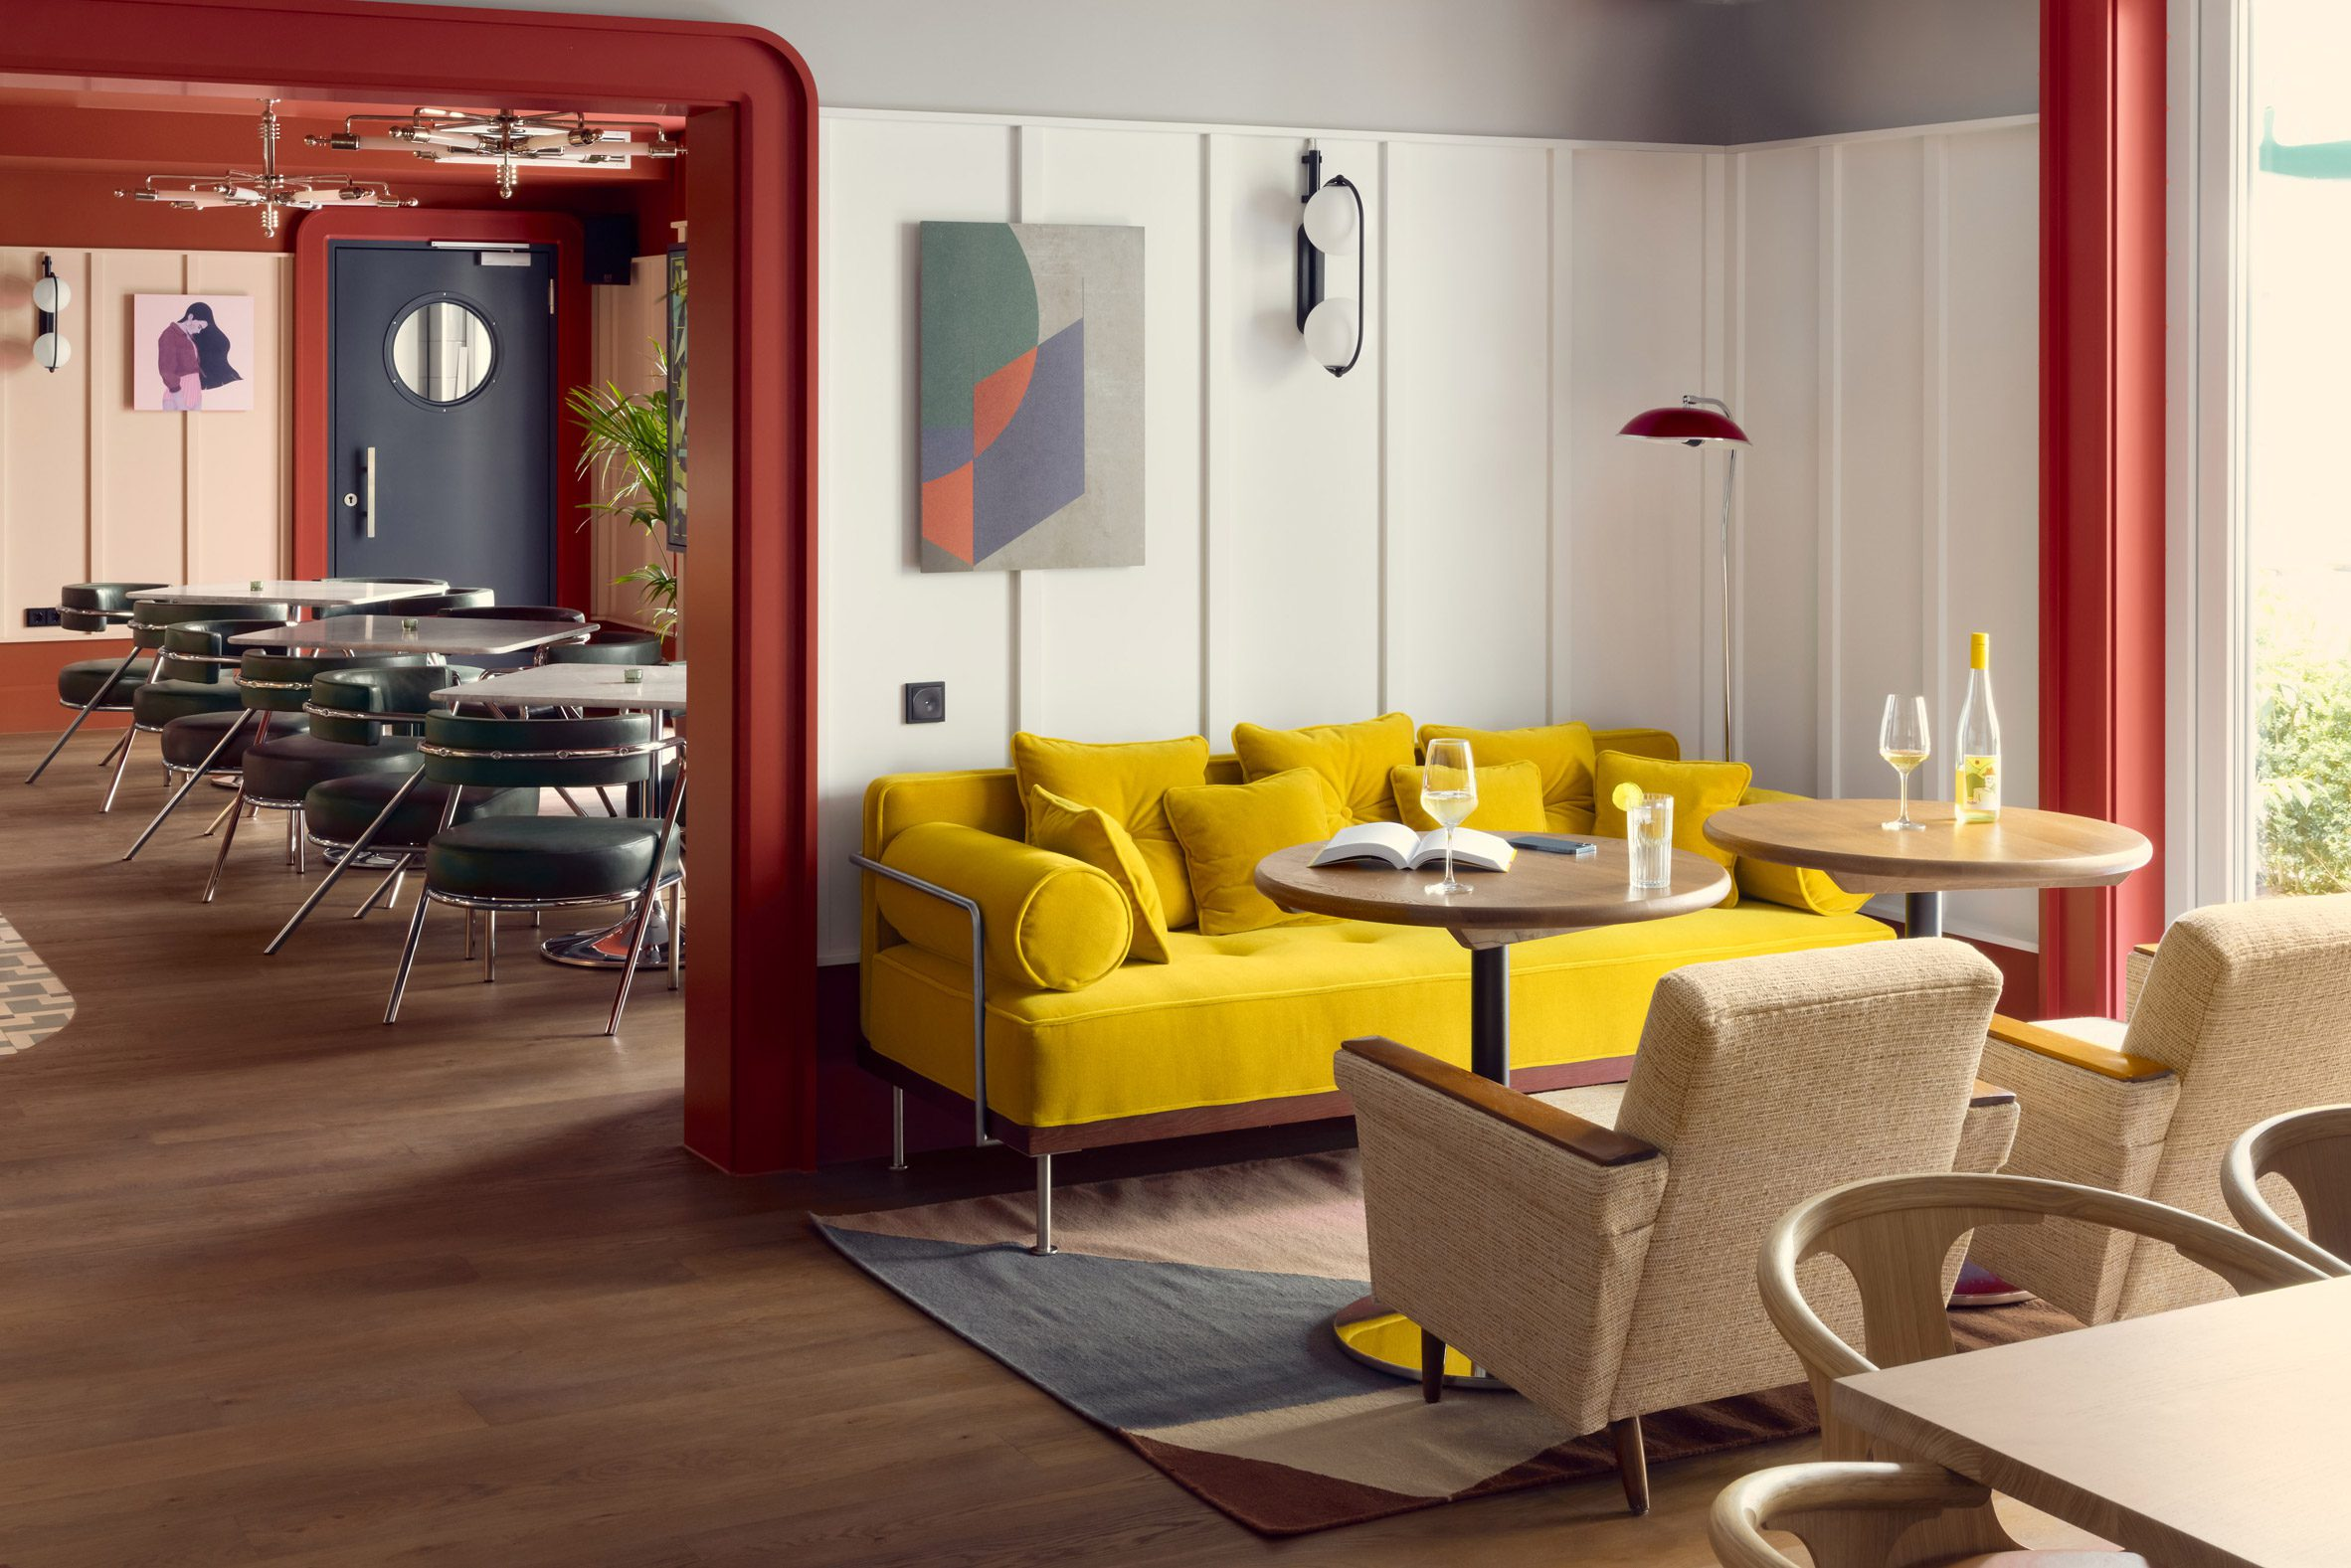 Yellow sofa in hotel interior by Fettle against white wall panels